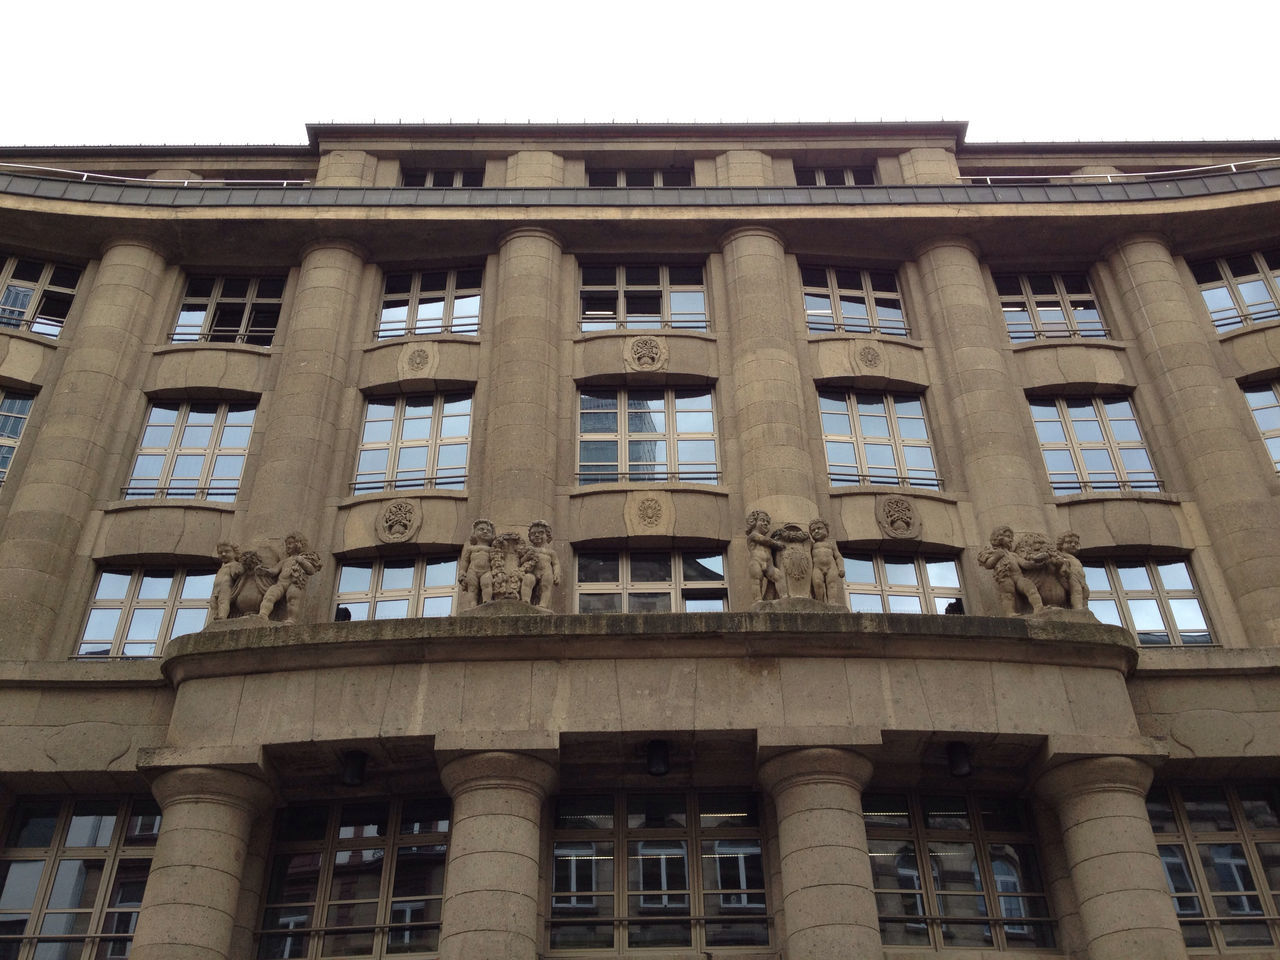 …like this front façade of a building near the Börse!